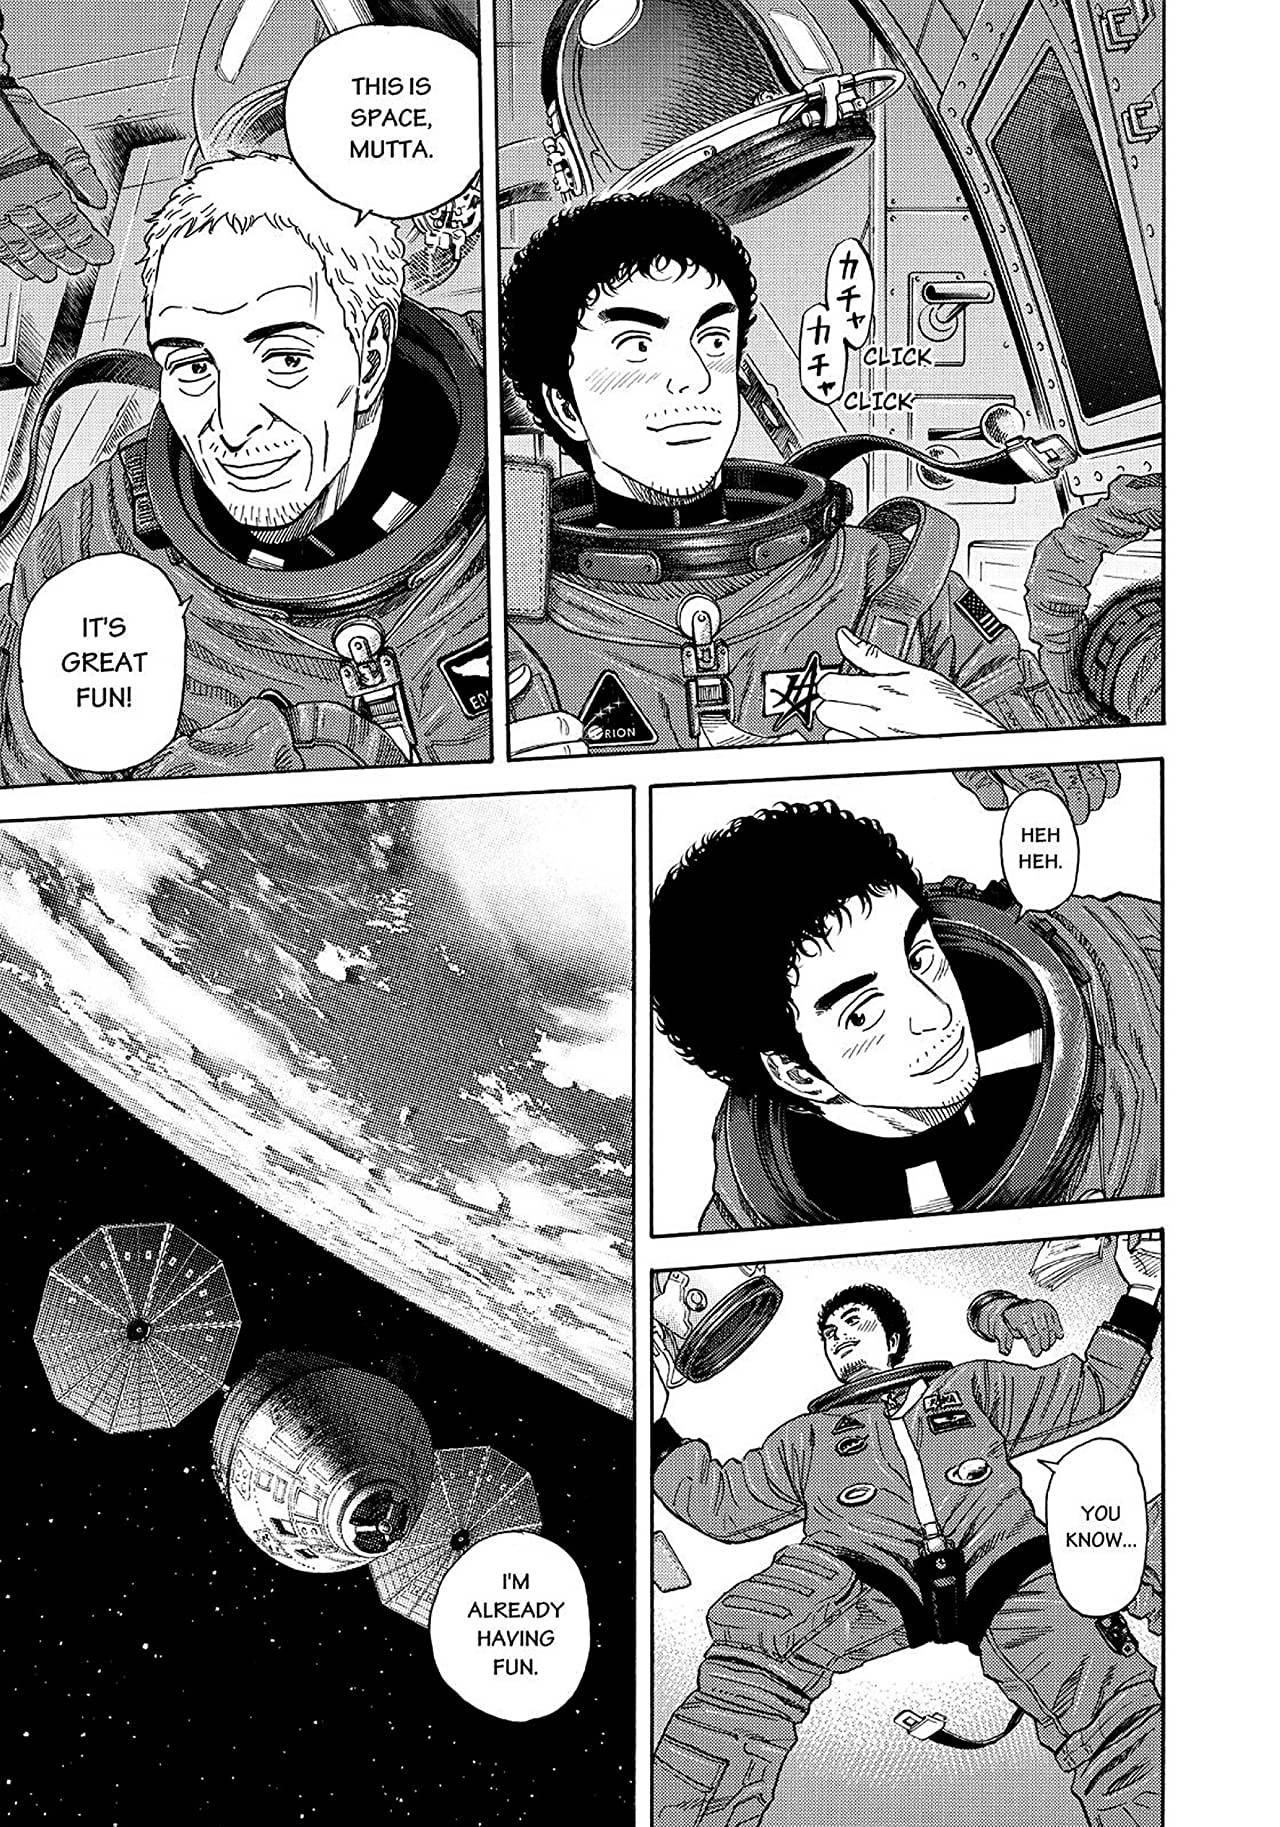 Space Brothers #242